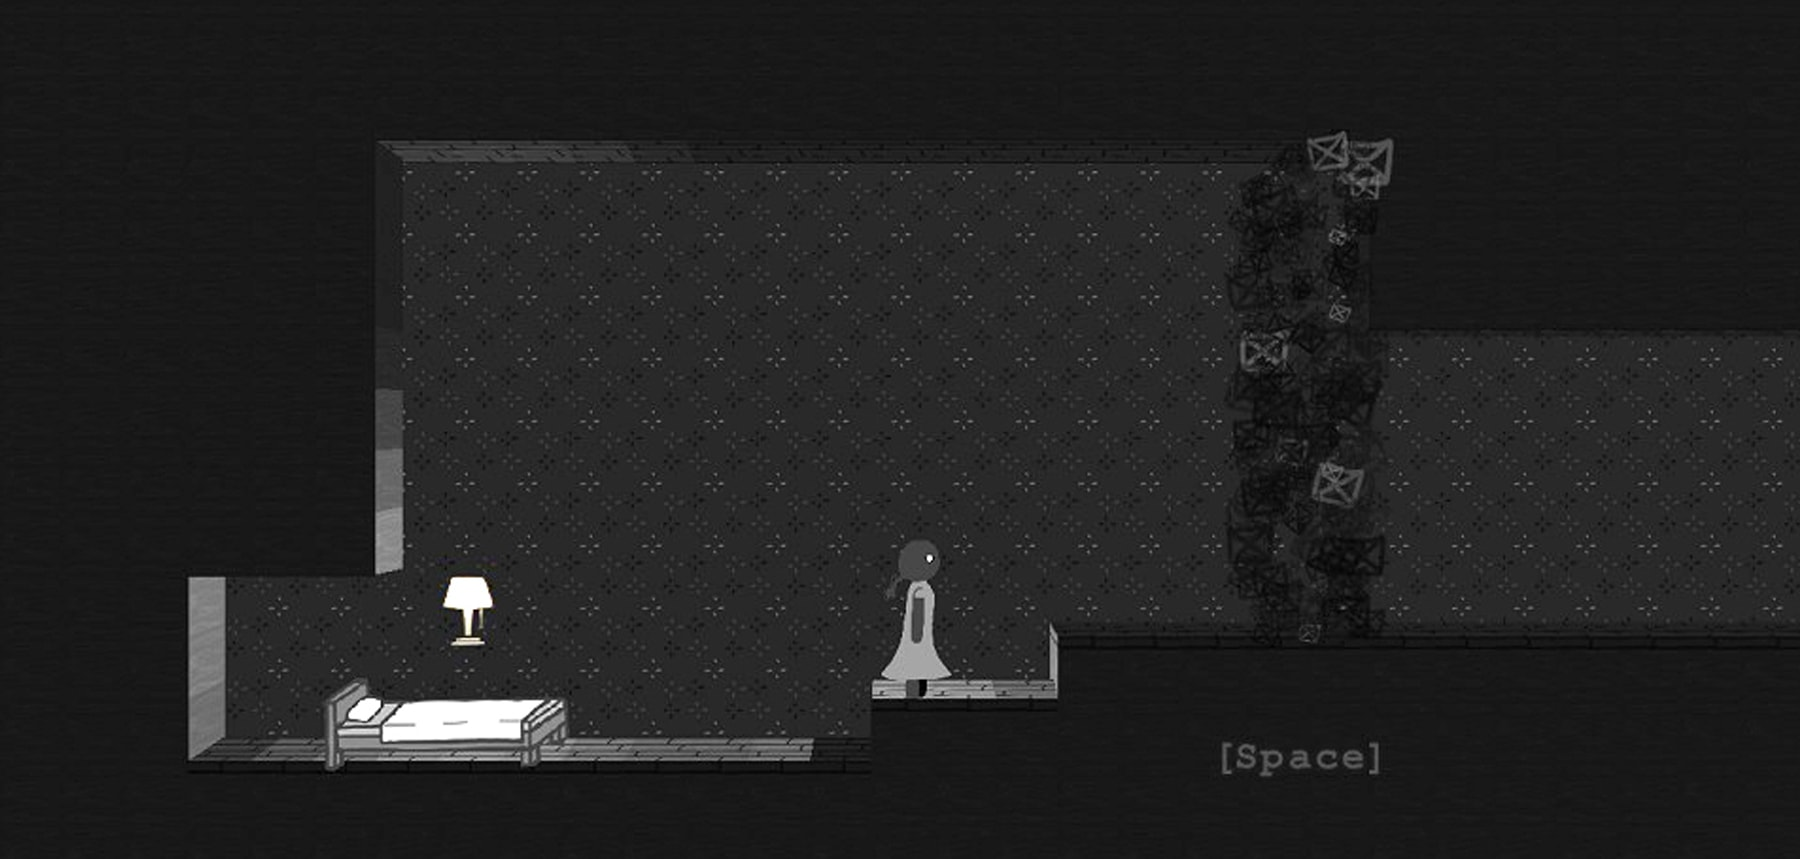 Screenshot from DigiPen student game Close Your Eyes, featuring a girl in a bedroom rendered in grayscale